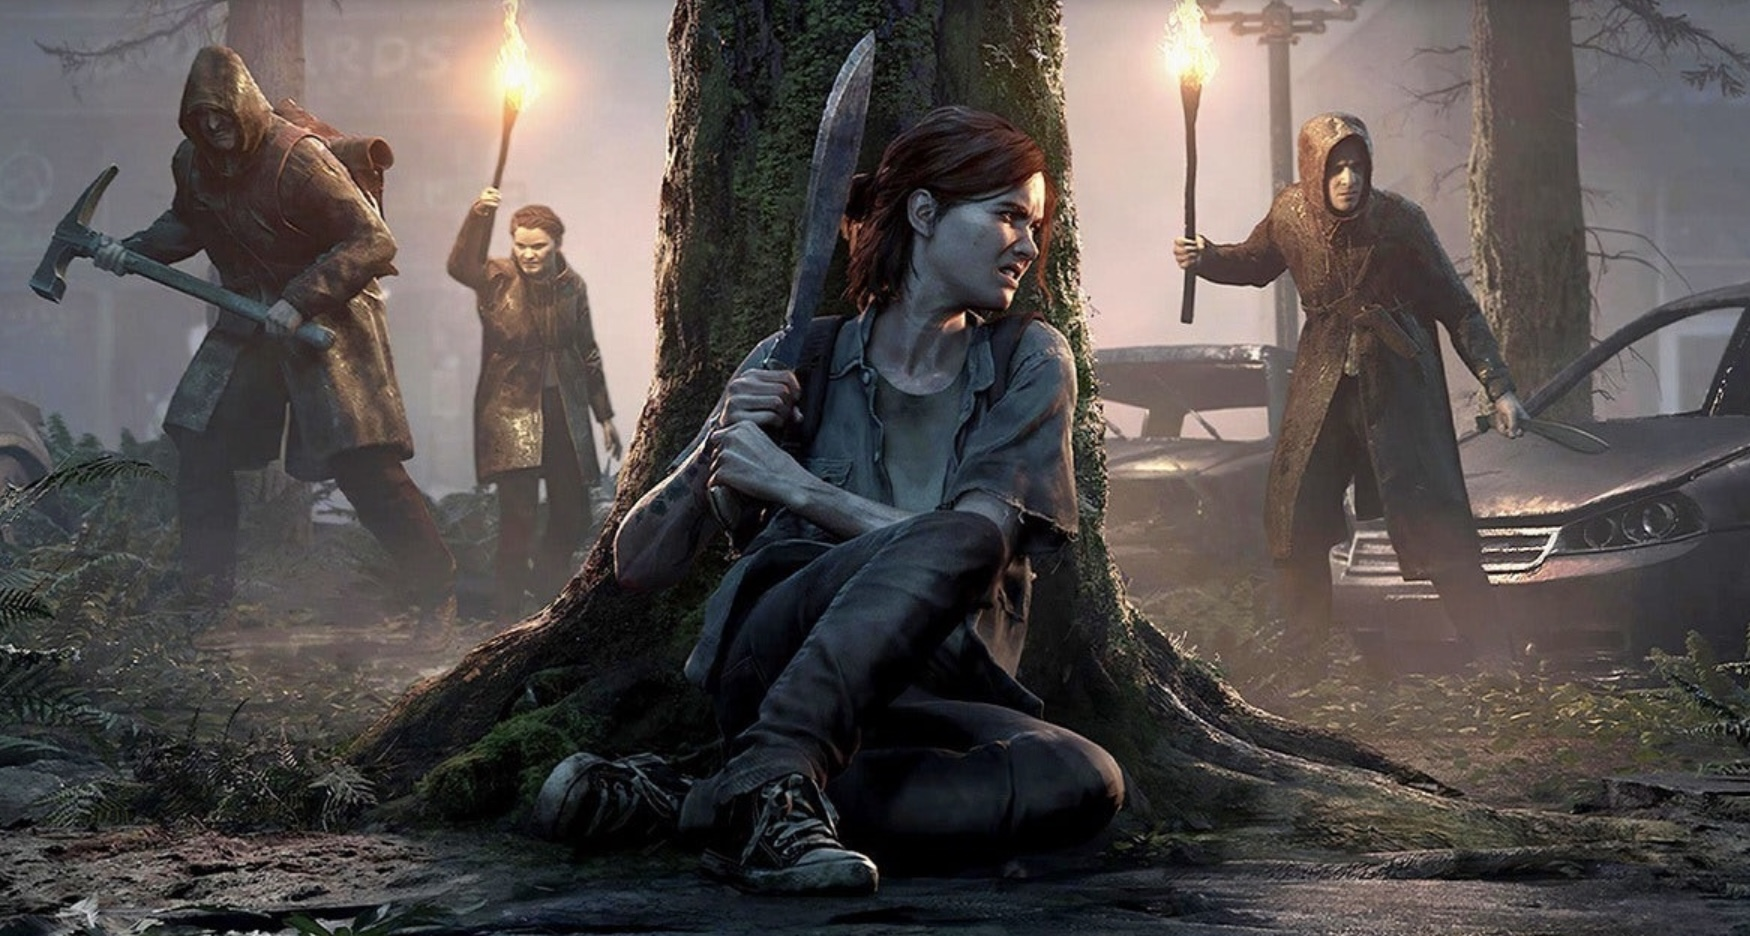 The Last Of Us 2 Update 1.08